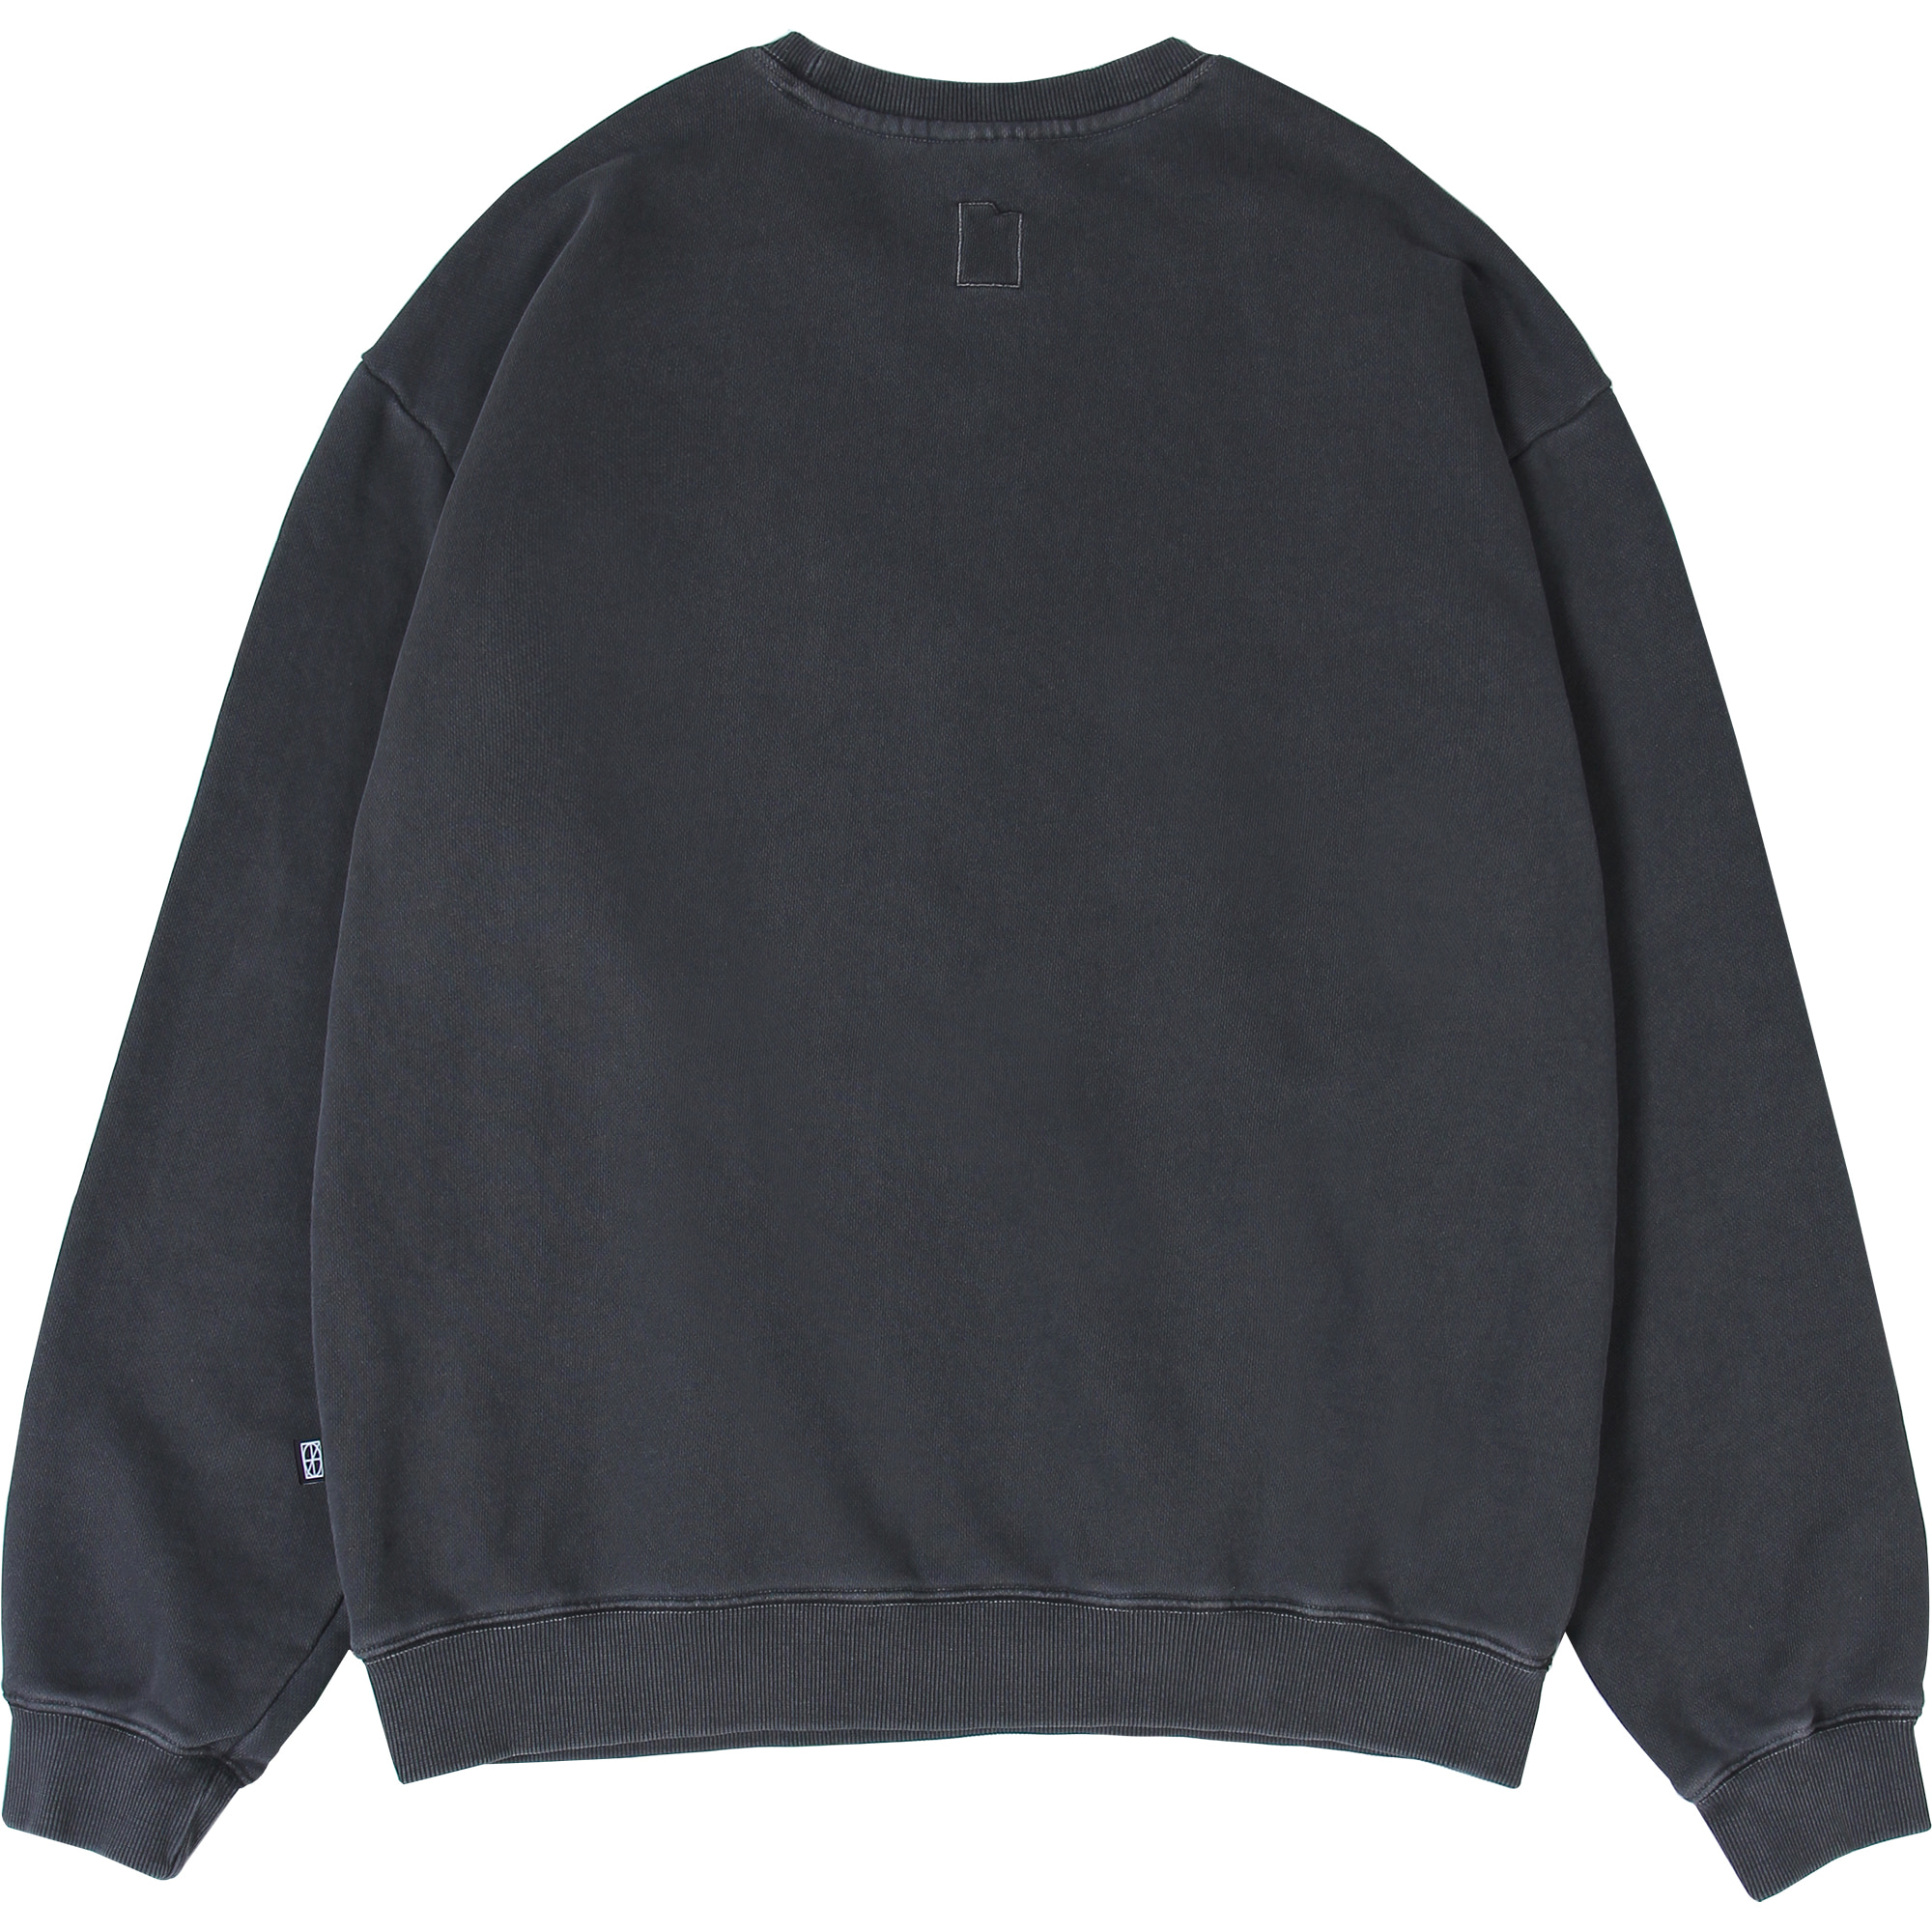 Pigment Wallet Label Crewneck [Dark Grey],NOT4NERD